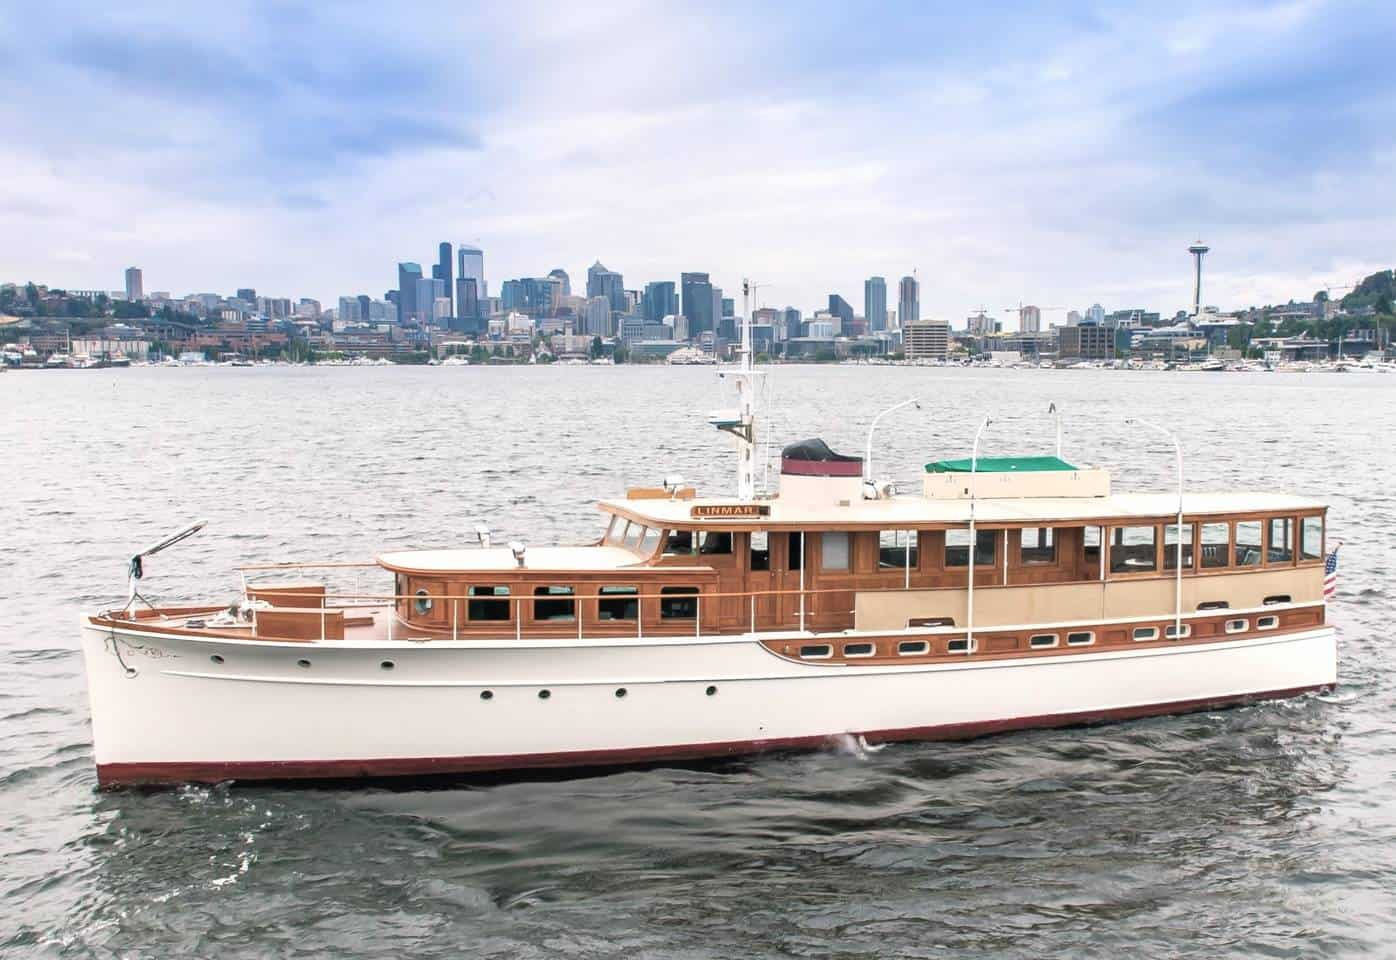 Yacht on Airbnb Seattle Lake Union